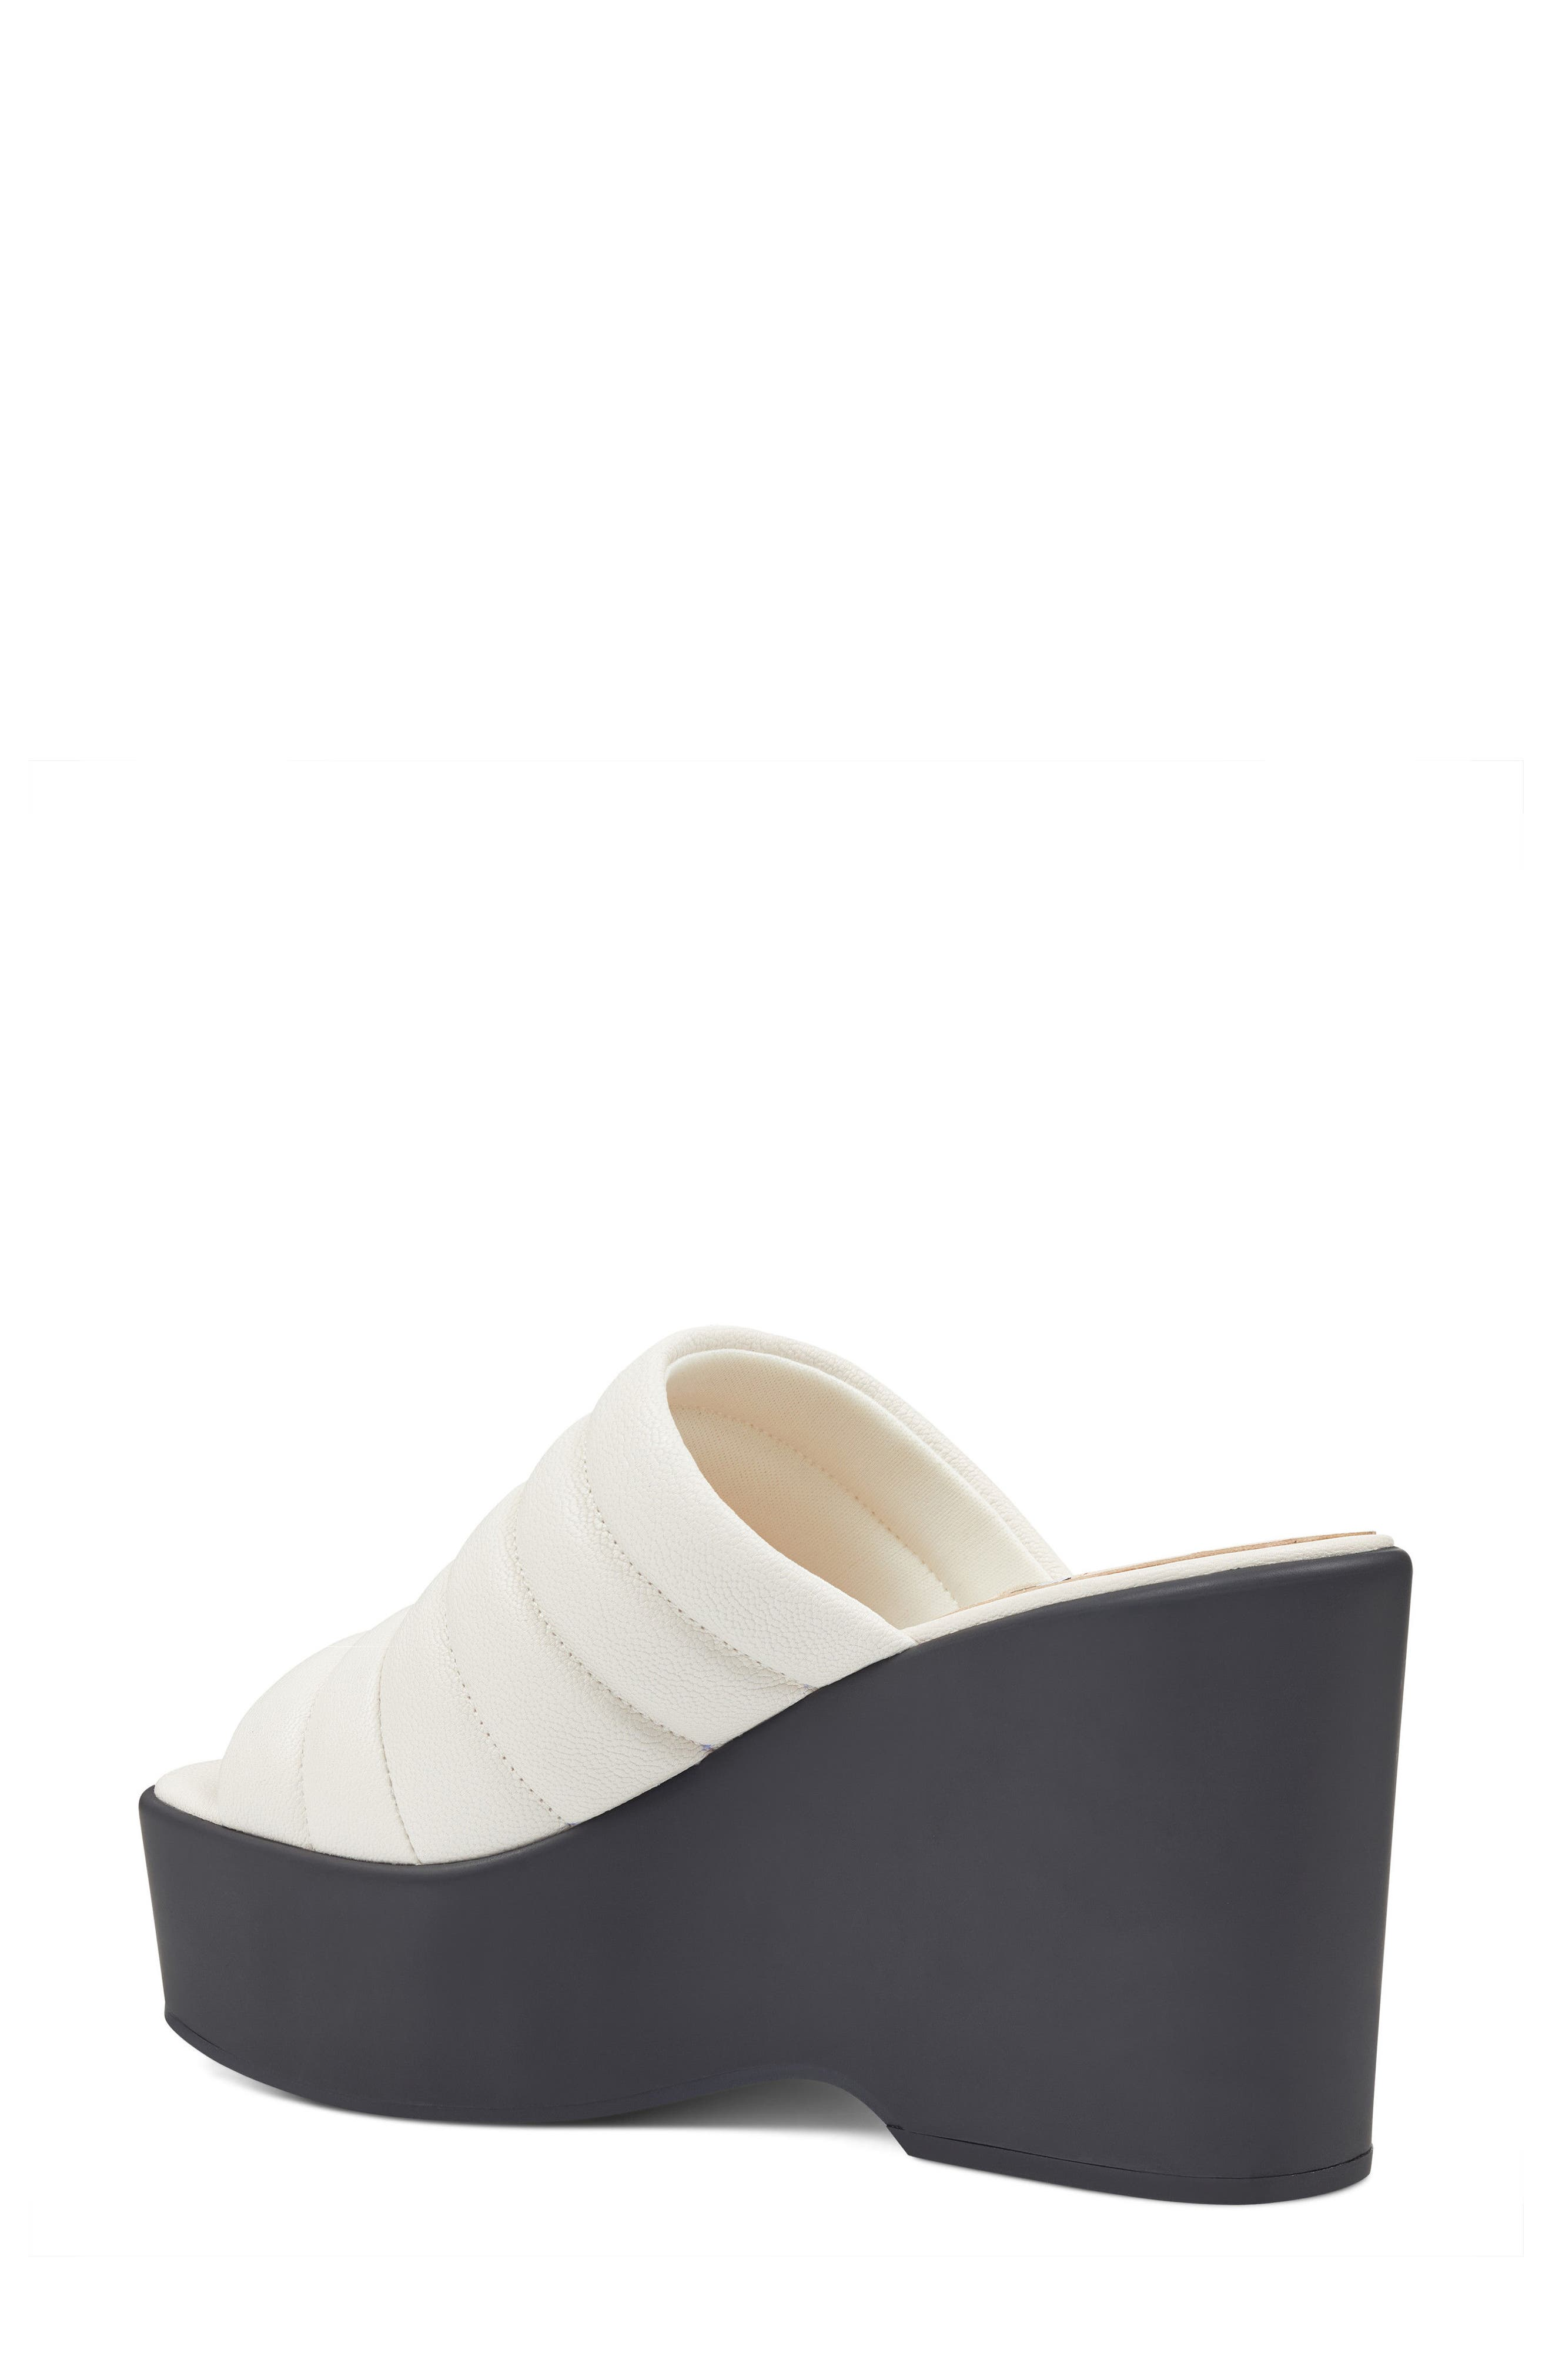 Millie - 40th Anniversary Capsule Collection Platform Wedge,                             Alternate thumbnail 2, color,                             Off White Leather